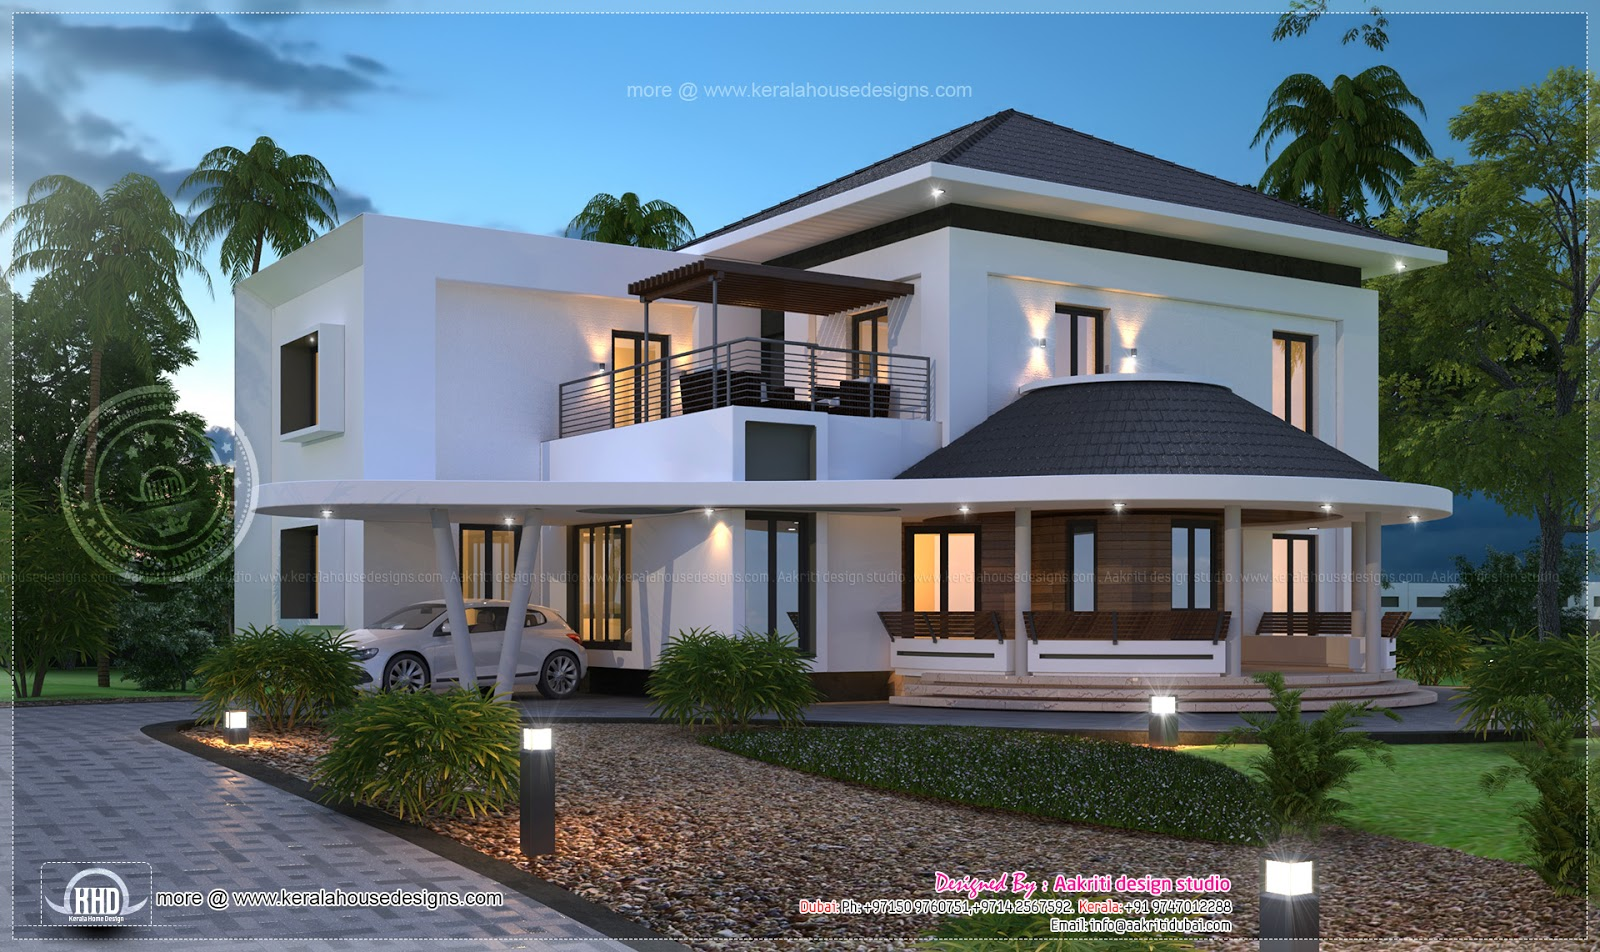 Beautiful 3200 sq ft modern villa exterior home kerala plans Gorgeous small bedroom designs for indian homes